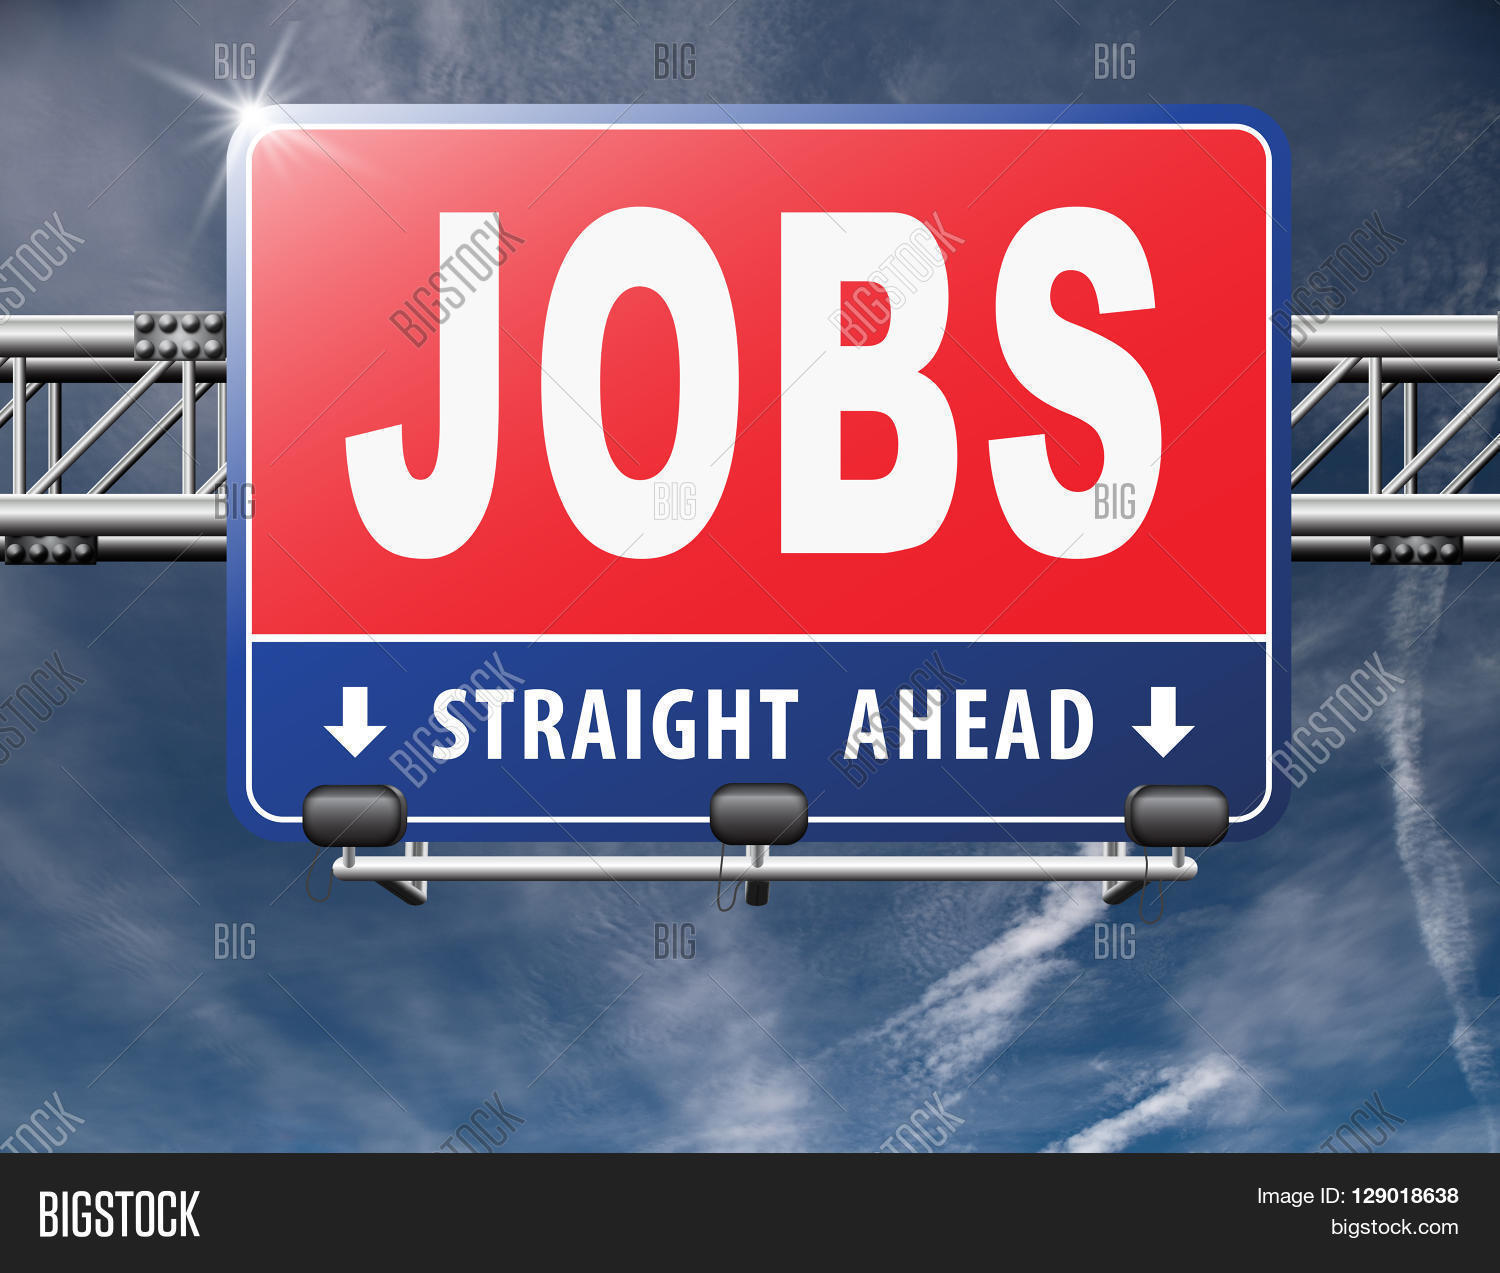 How to Find Jobs Using Online Classified Ads